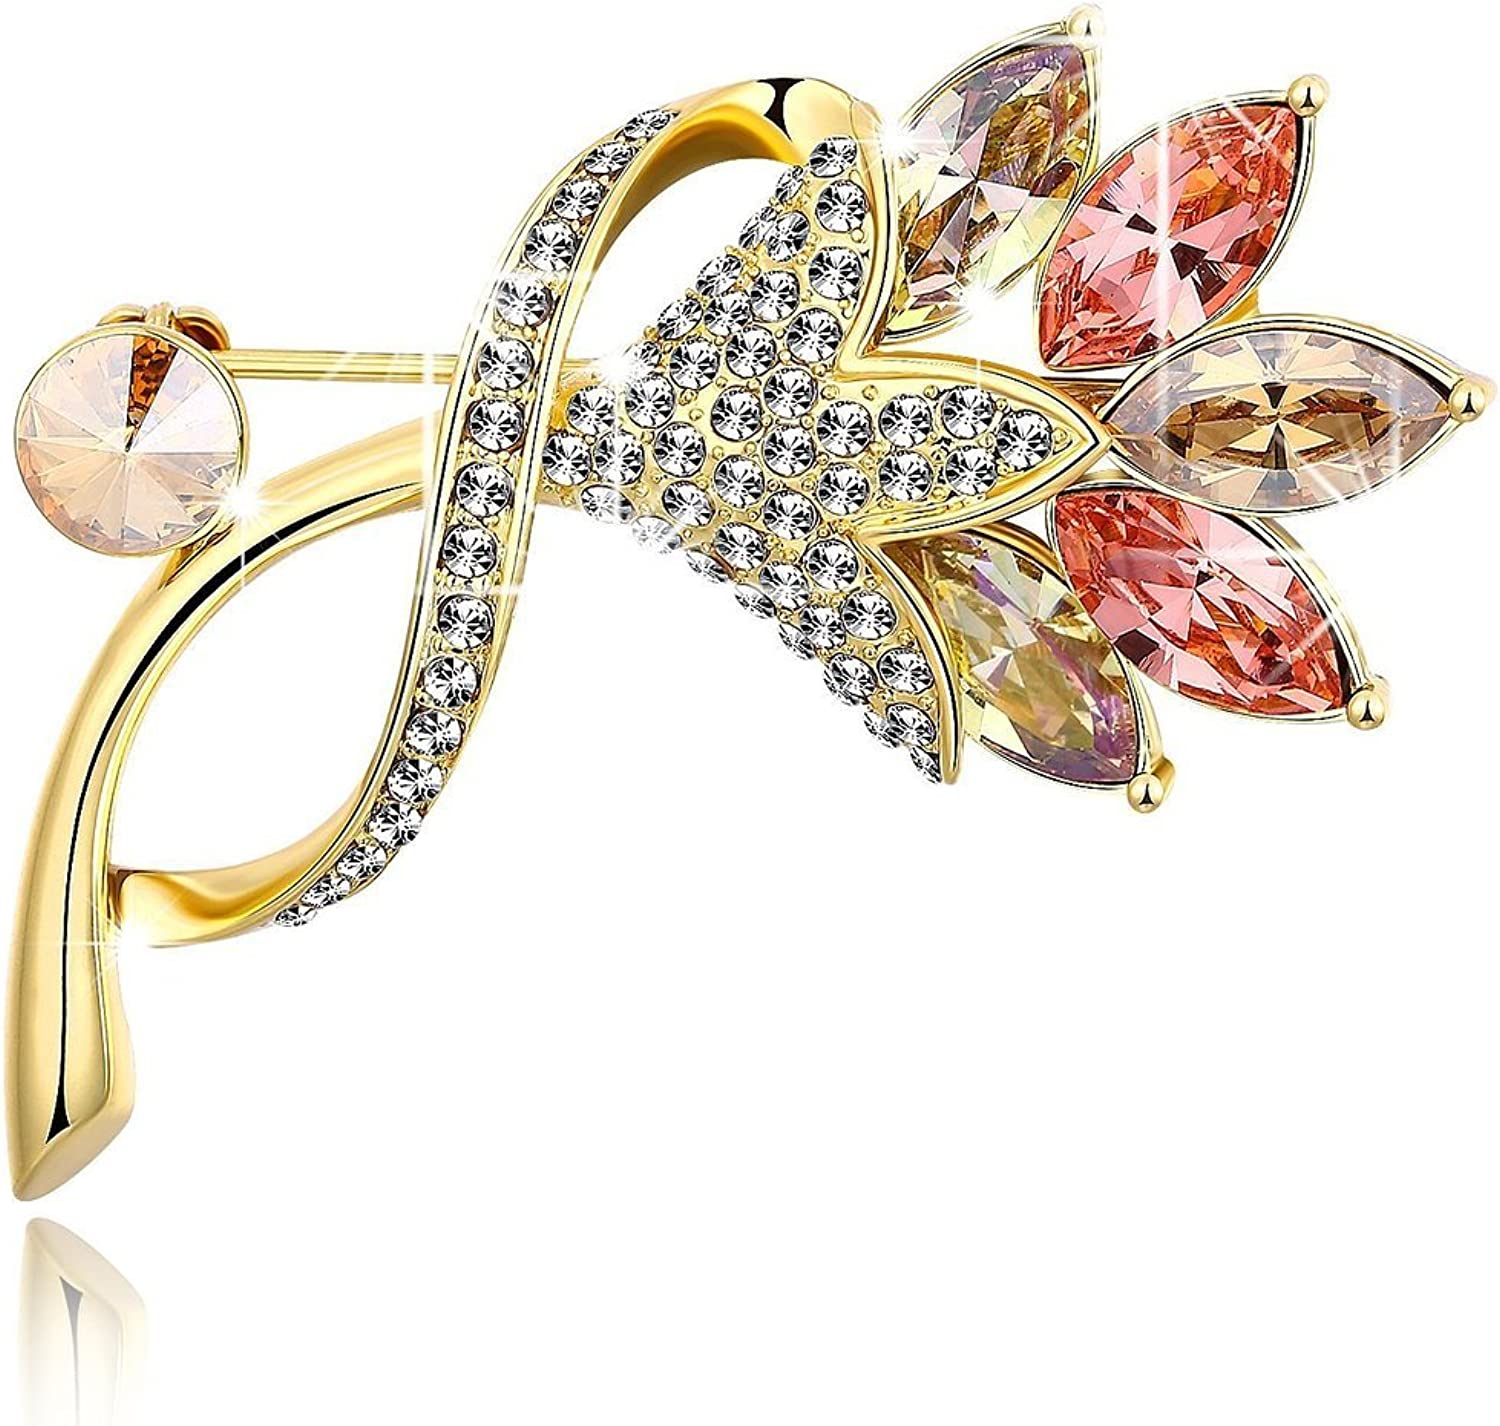 Swarovski Elements Sparkling Blossom Rare Flower Brooch for Women by YELLOW CHIMES